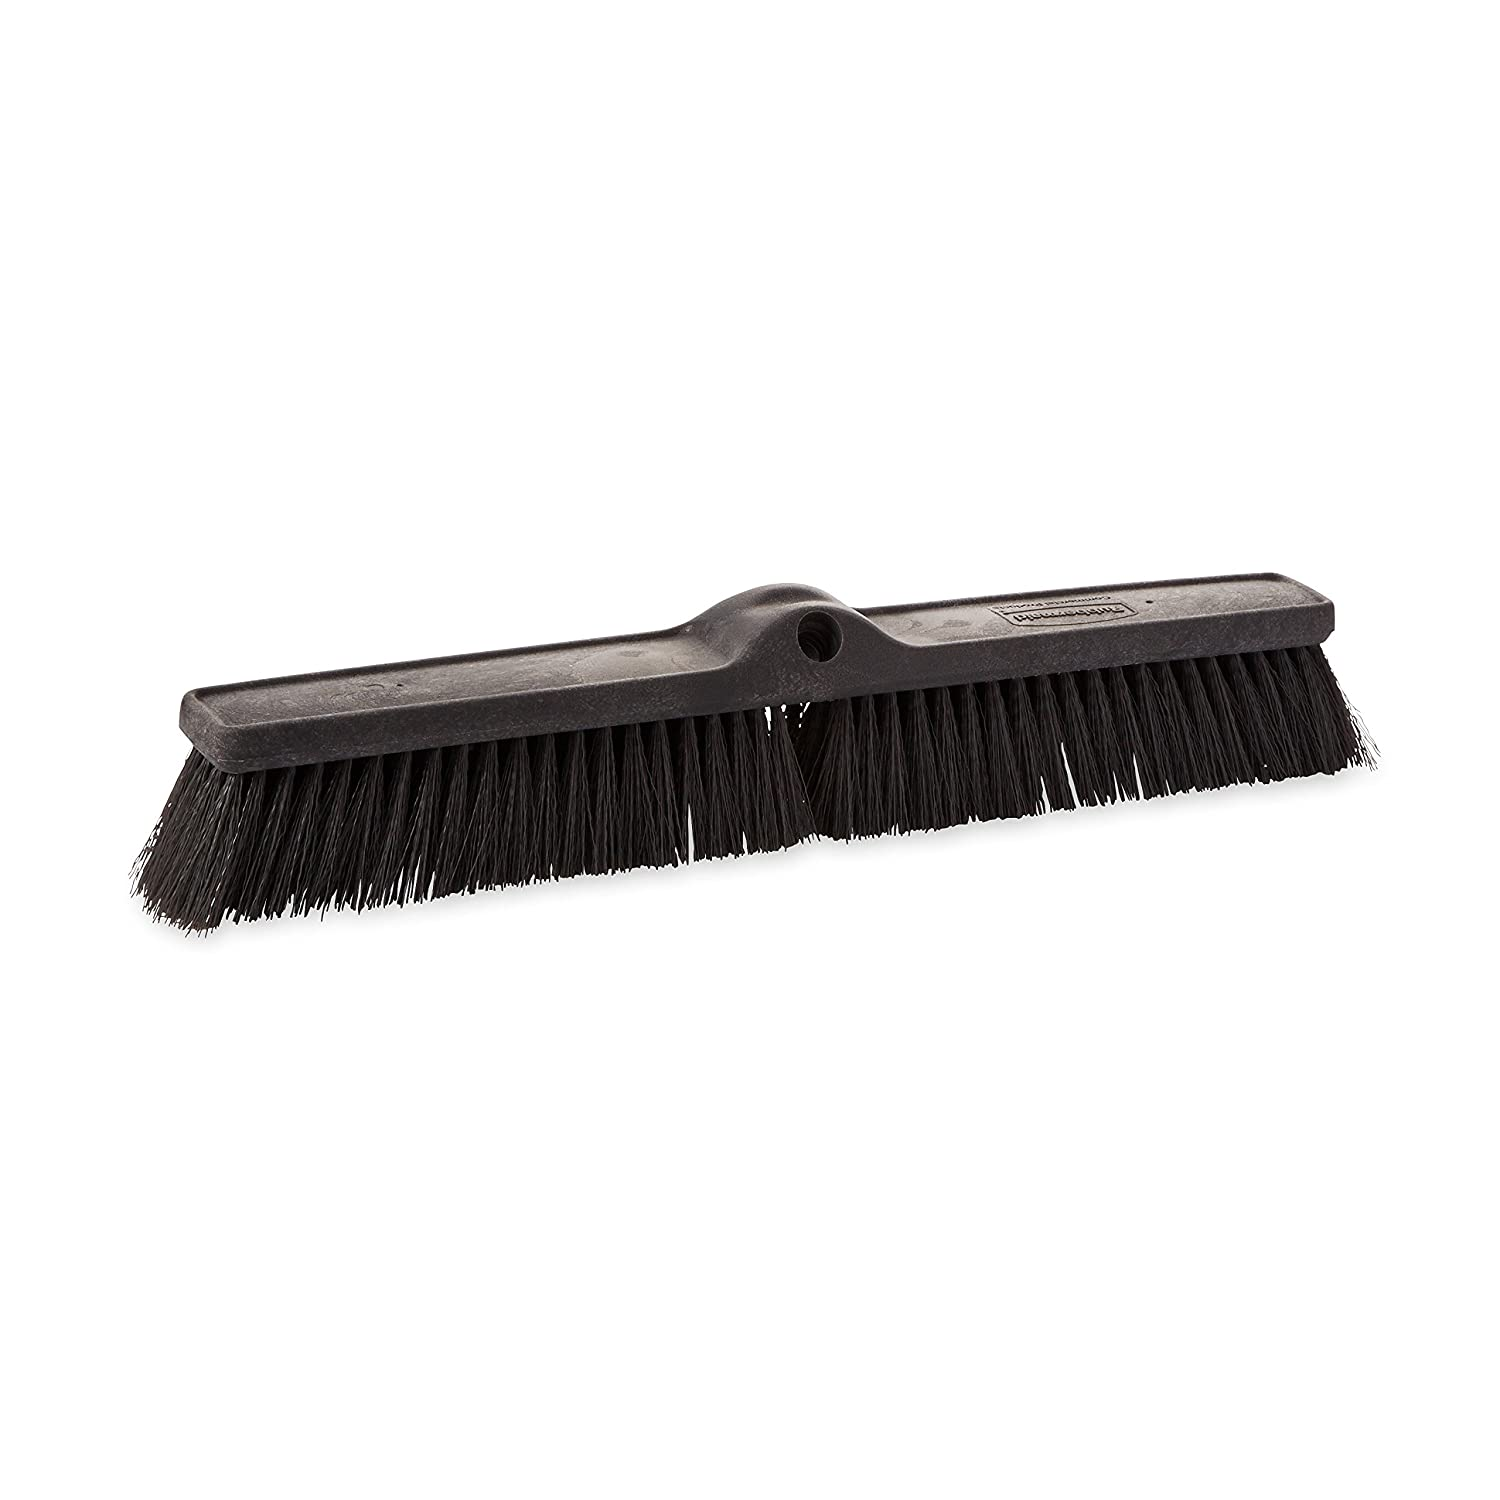 Rubbermaid Commercial Executive Series 24-Inch Push Broom, Multi-Surface Medium-Duty Sweep (1861211) Rubbermaid Commercial Products